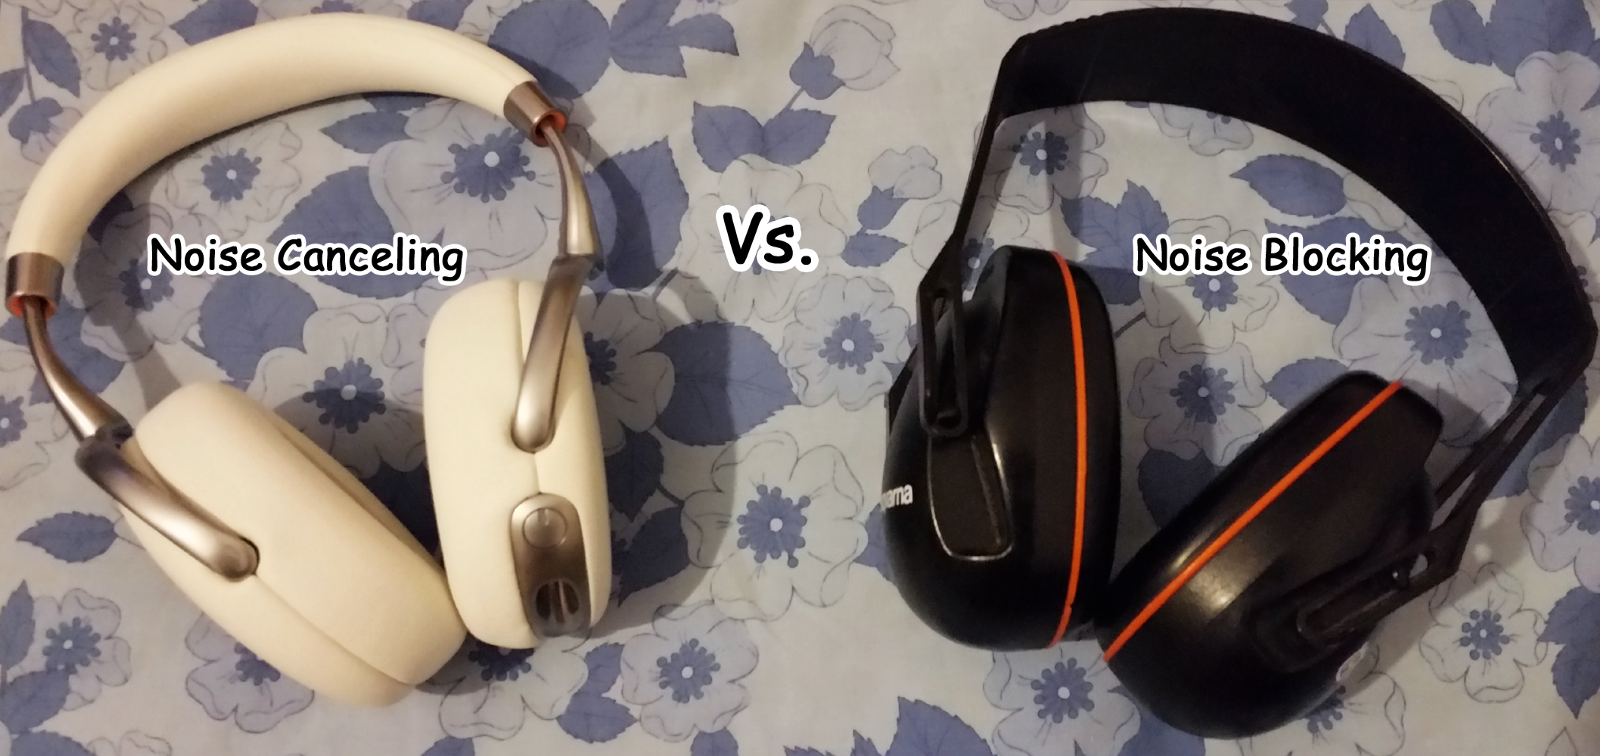 Noise Canceling Vs Blocking Headphones Disability Equipment Microphone Amplifier With Suppression